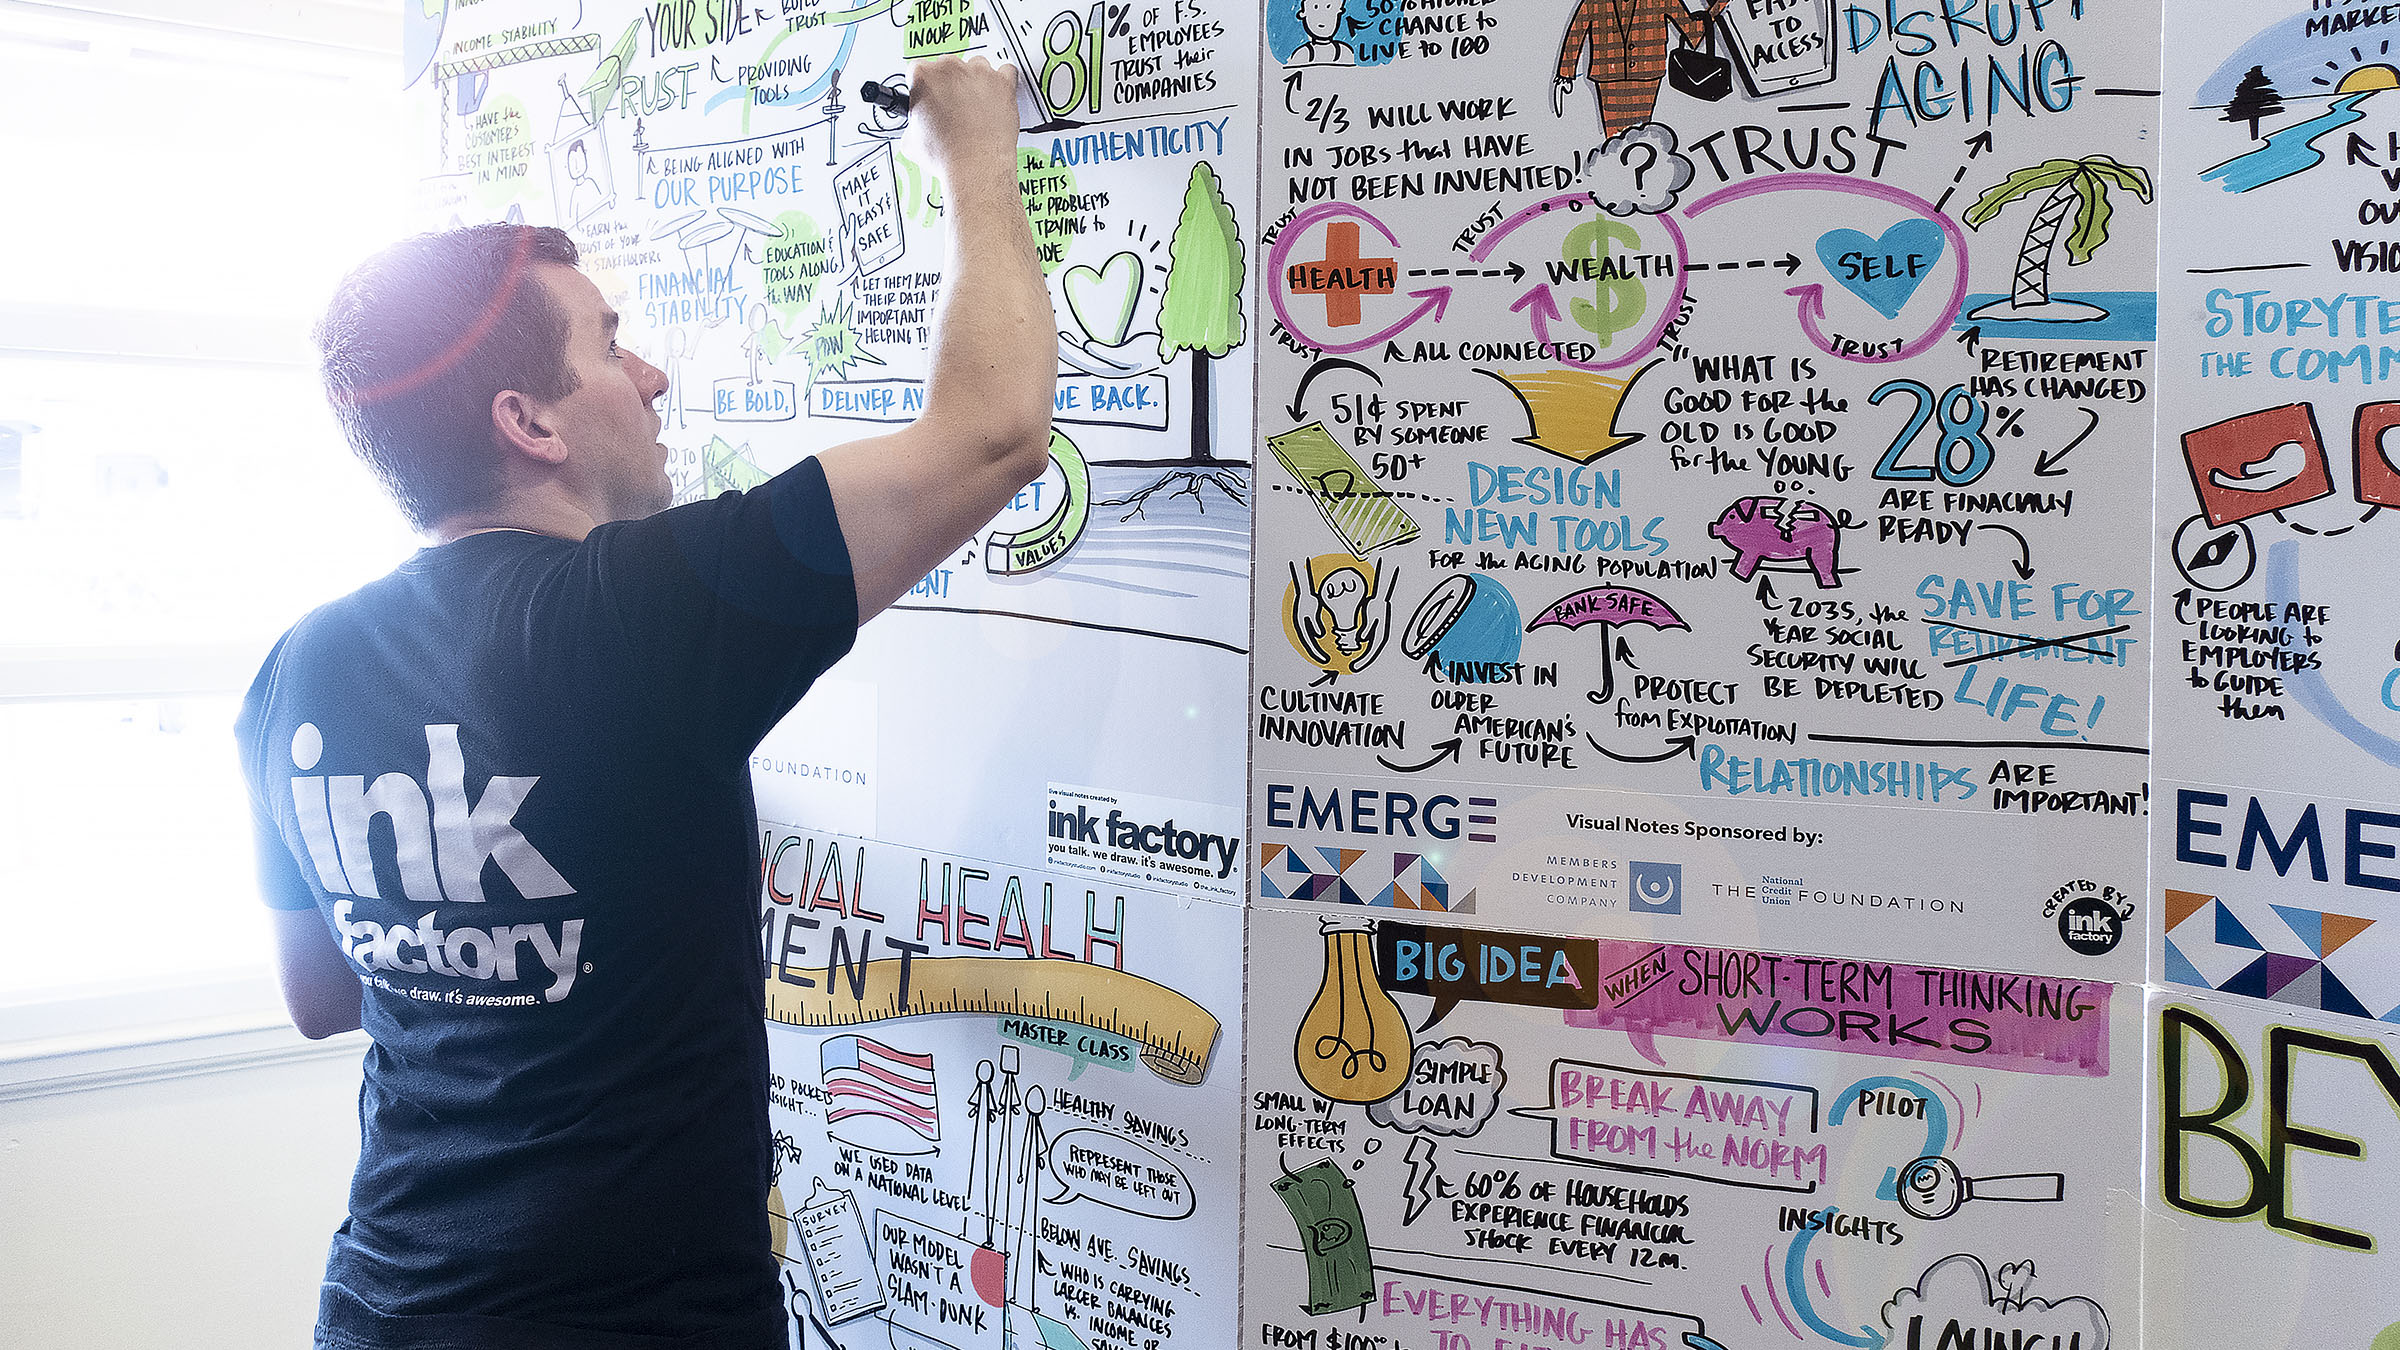 A live visual note-taker creating a living mural on display at a conference.